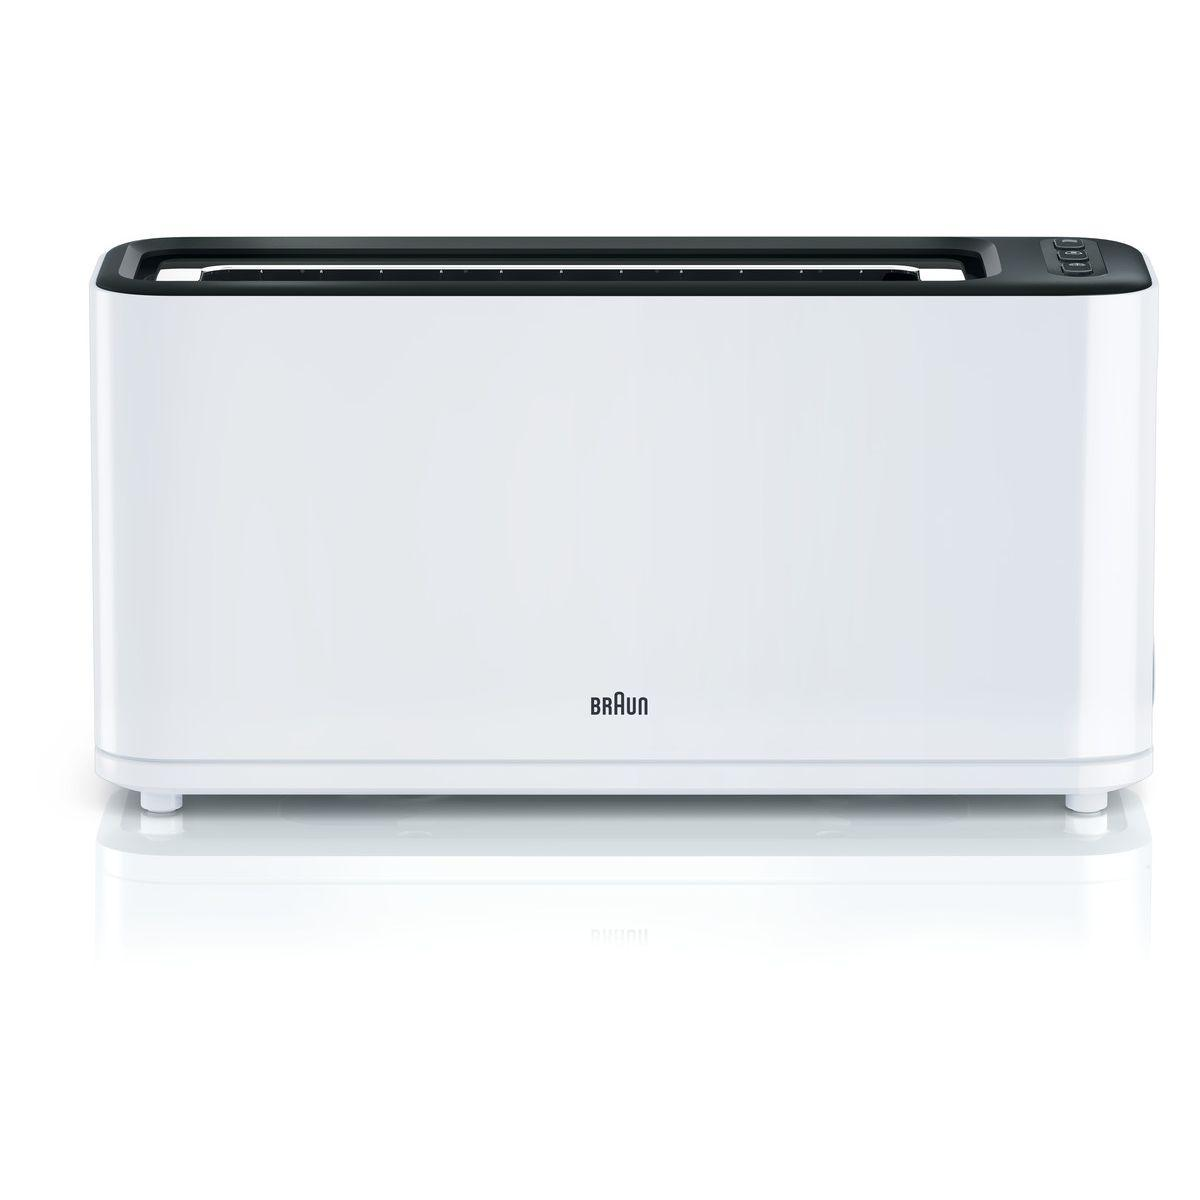 Grille-pain braun ht3100wh purease - 2% de remise imm?diate av...